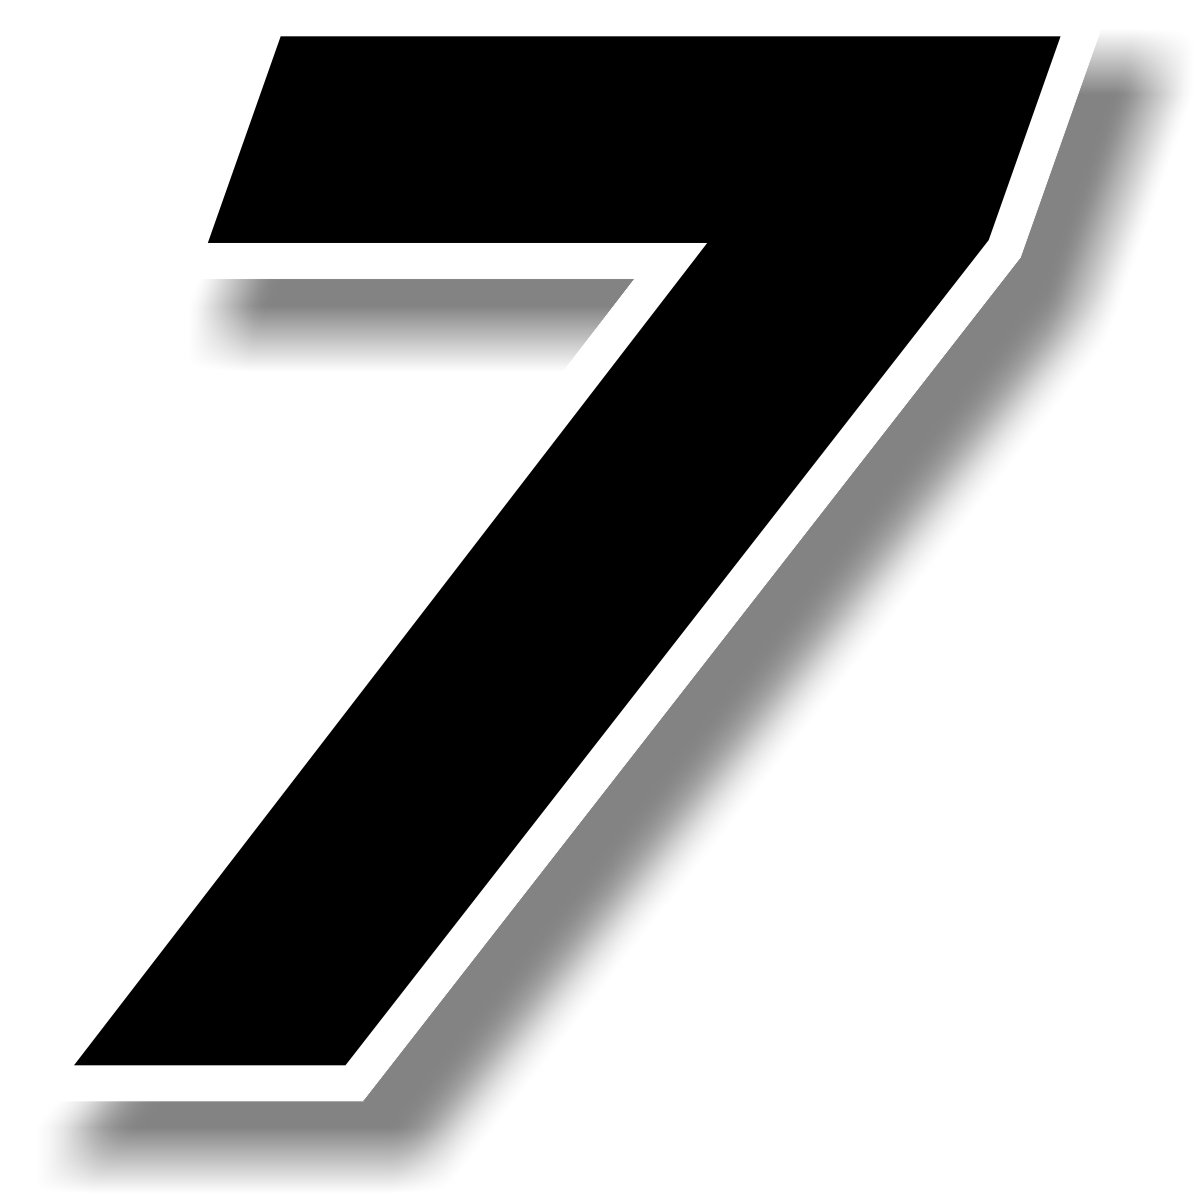 race number 9 square font Graphic Effects Vinyl sticker//decal White Height: 4 inches Black outline